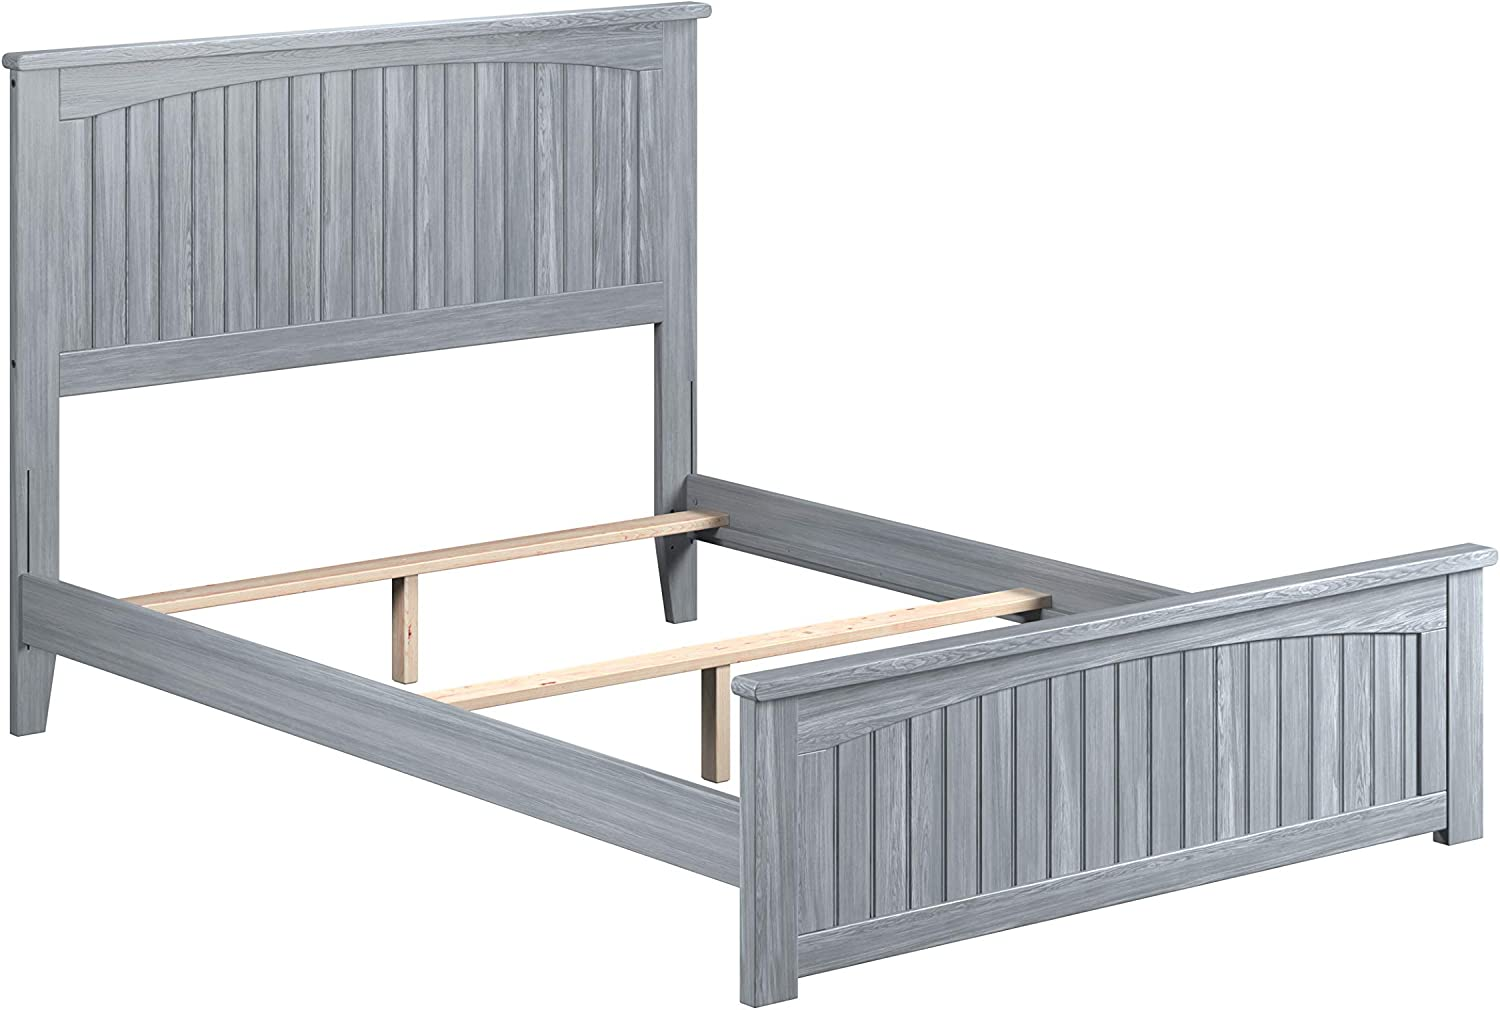 Atlantic Furniture Nantucket Bed with Matching Footboard, Full, Driftwood